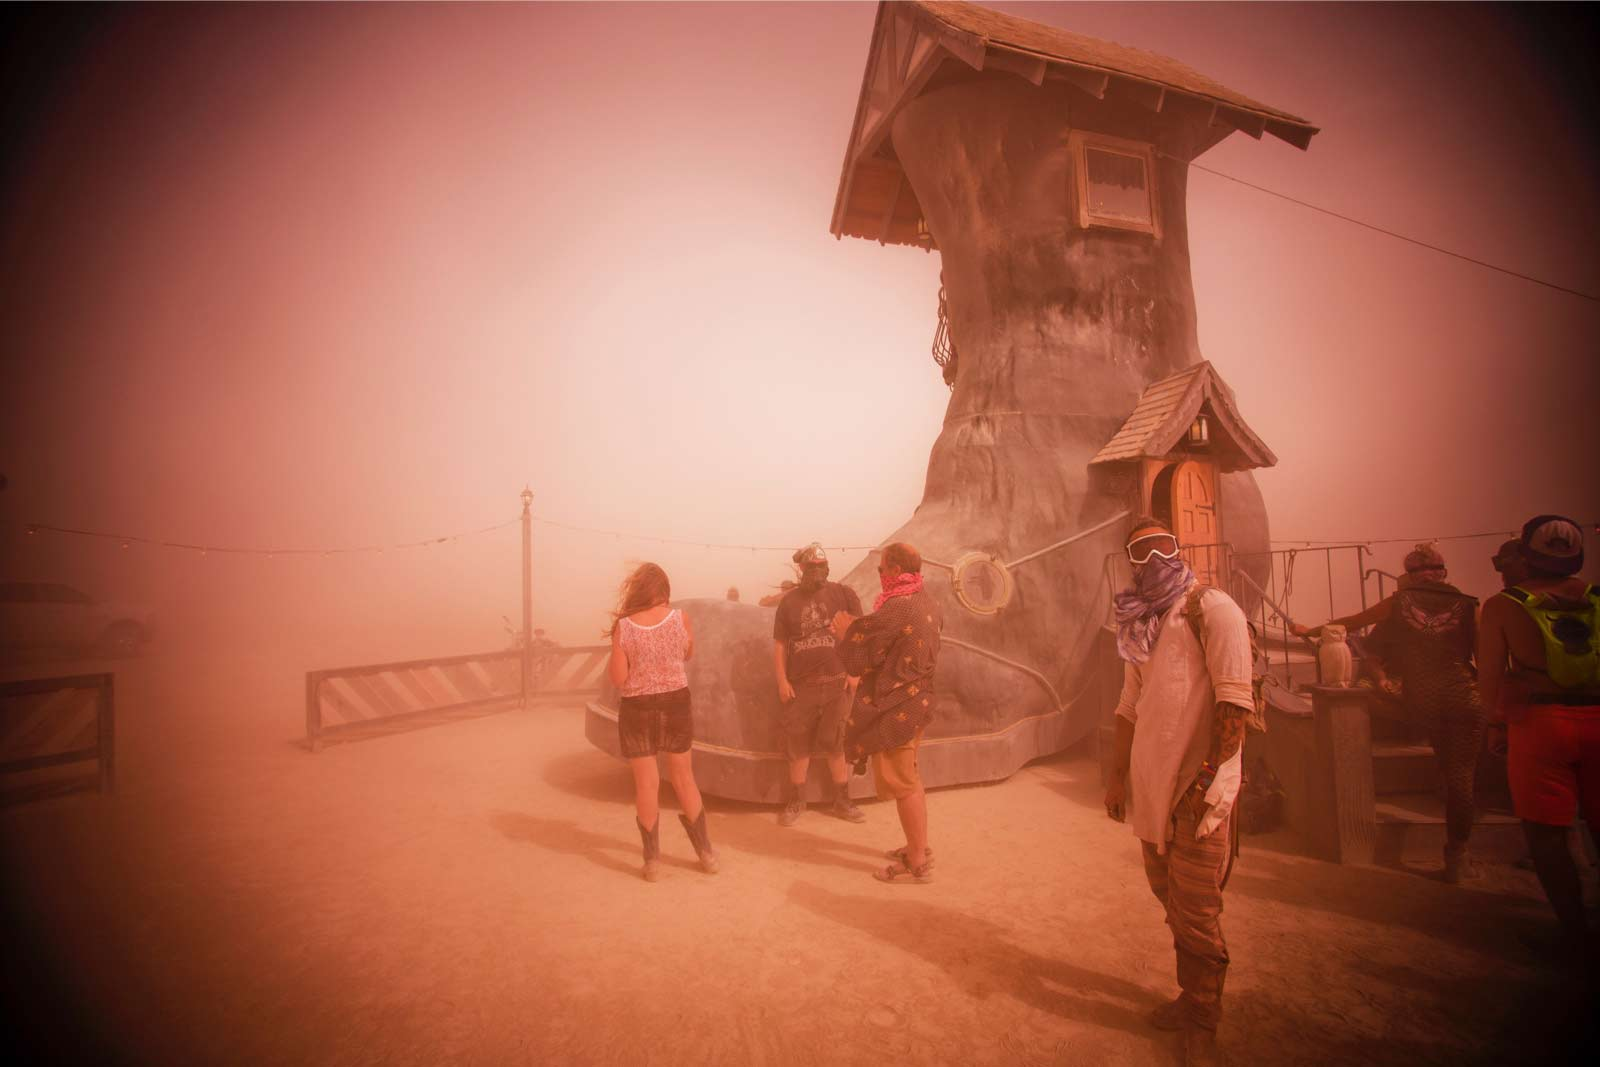 Burning-Man-2015-116;-Playa-Dust-Storm-Cesar-Storied-Haven